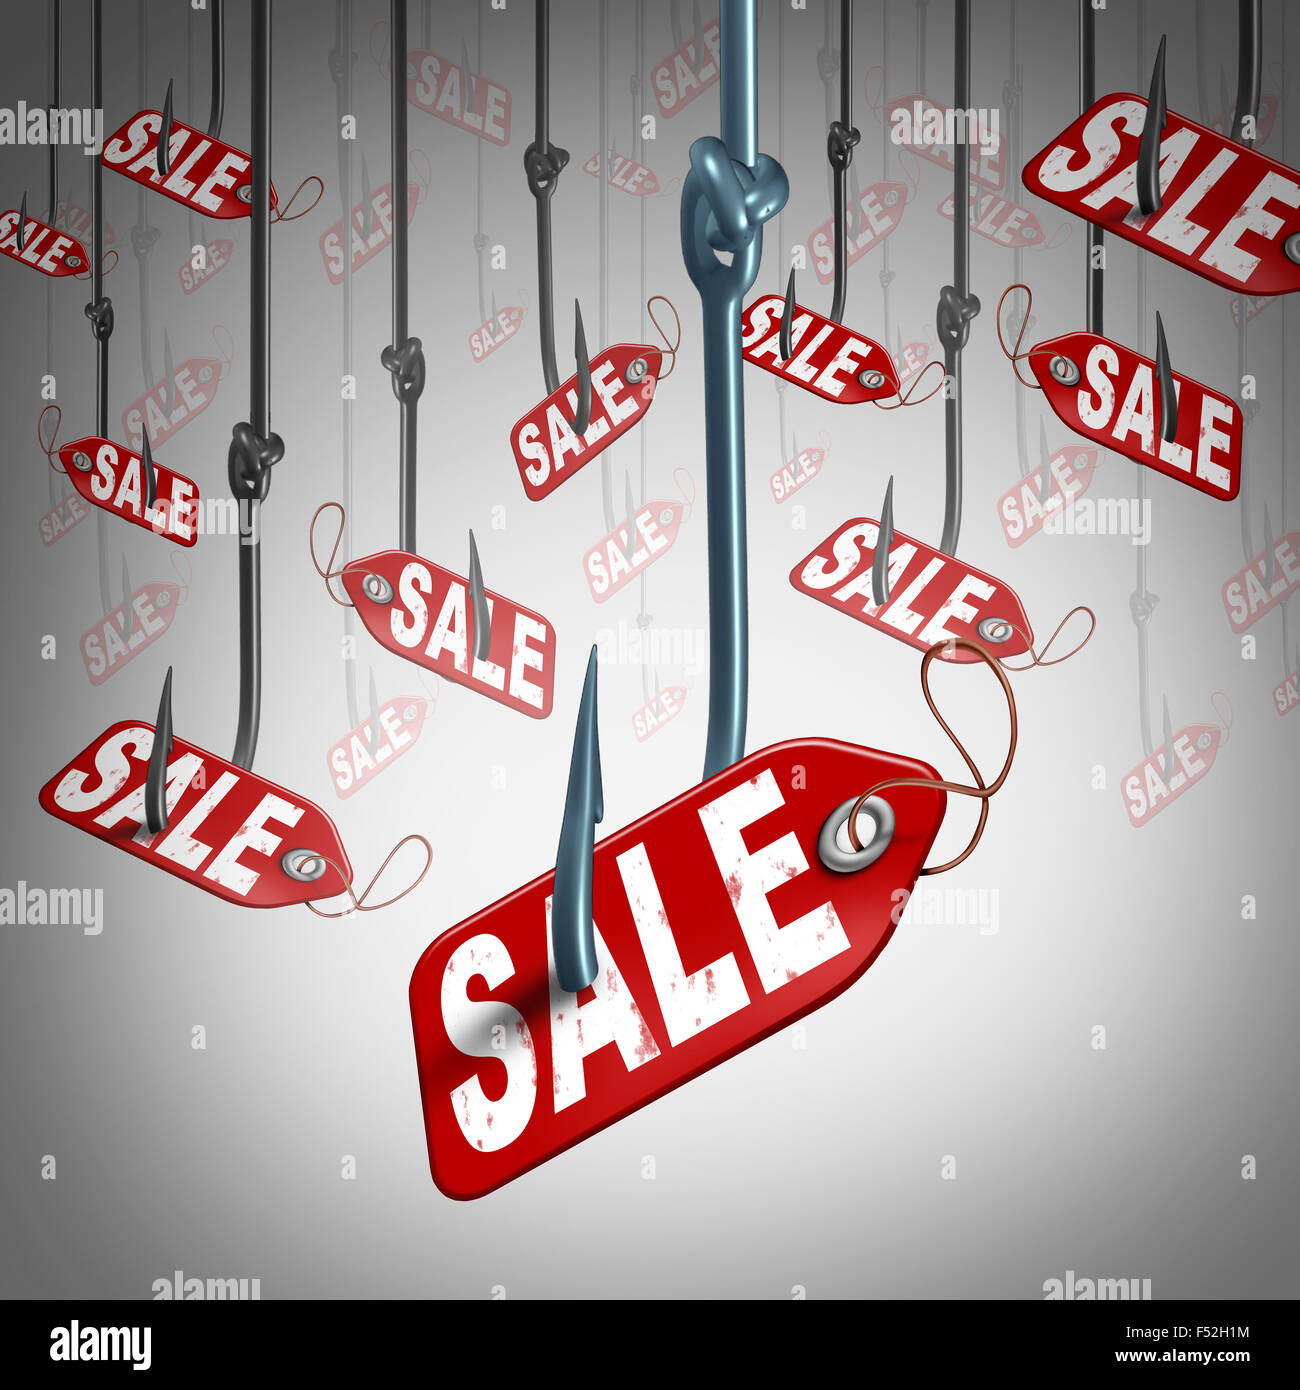 Price incentive retail business concept as a group of fishing hooks with a sale price tag bait attached to the lure - Stock Image